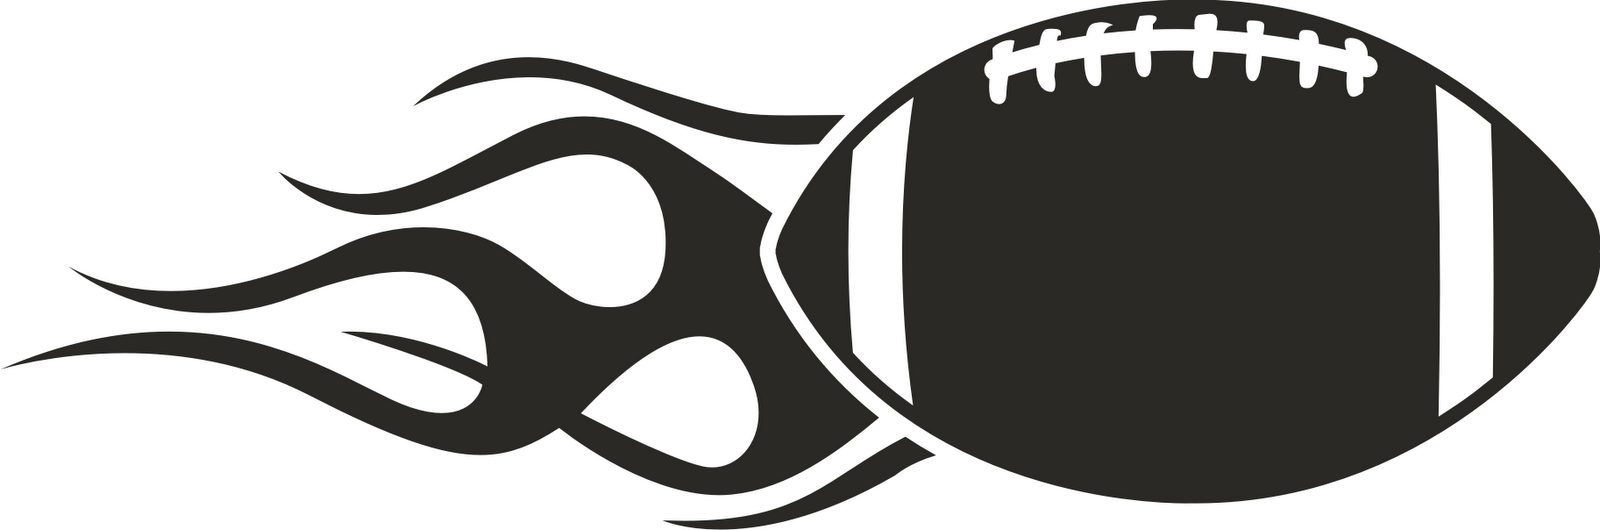 1600x530 Football Clip Art Free Printable Clipart Images